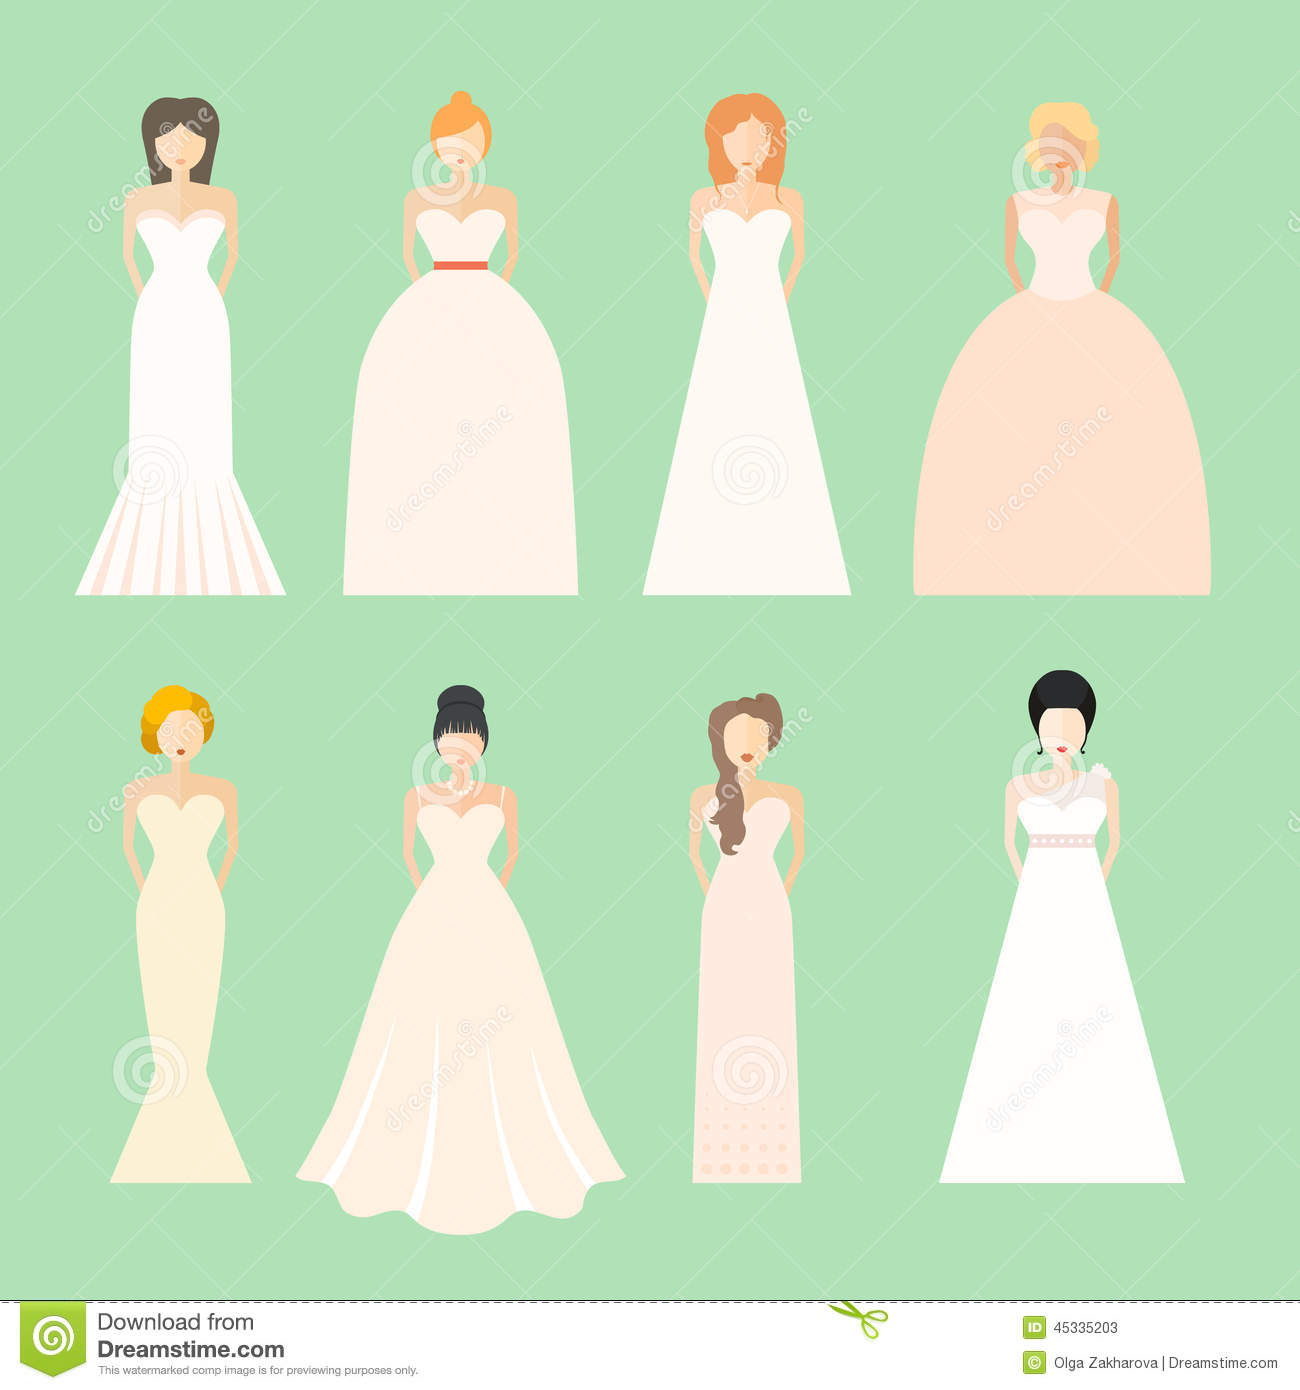 Brids in wedding dresses stock vector illustration of icon 45335203 brids in wedding dresses junglespirit Image collections